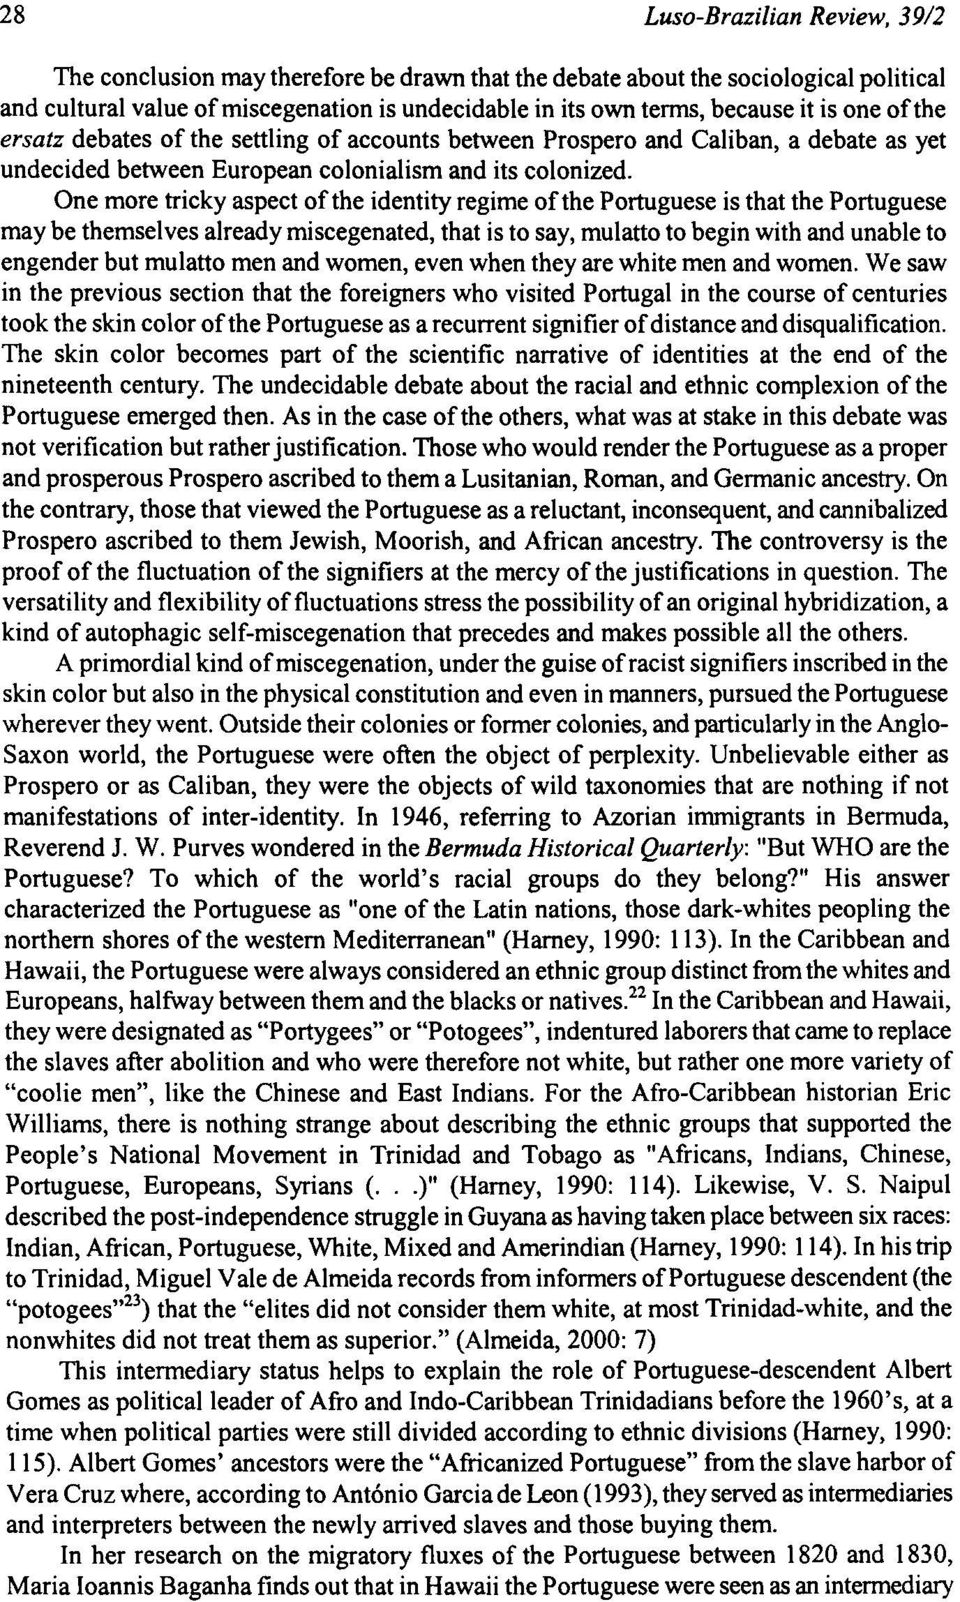 One more tricky aspect of the identity regime of the Portuguese is that the Portuguese may be themselves already miscegenated, that is to say, mulatto to begin with and unable to engender but mulatto